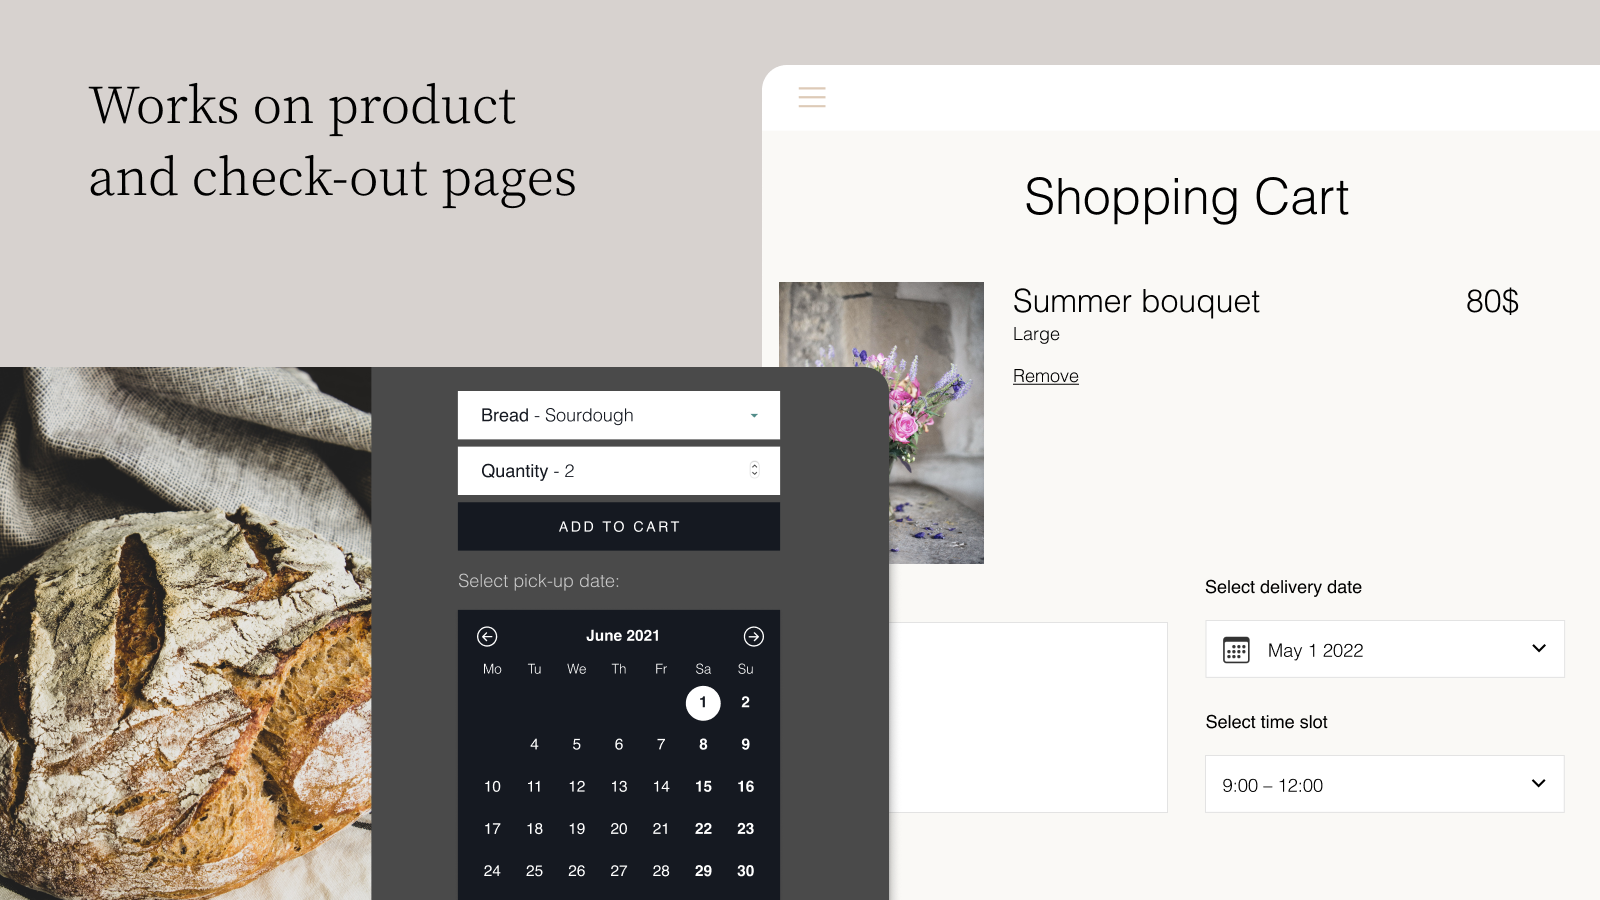 Works on product and check-out pages